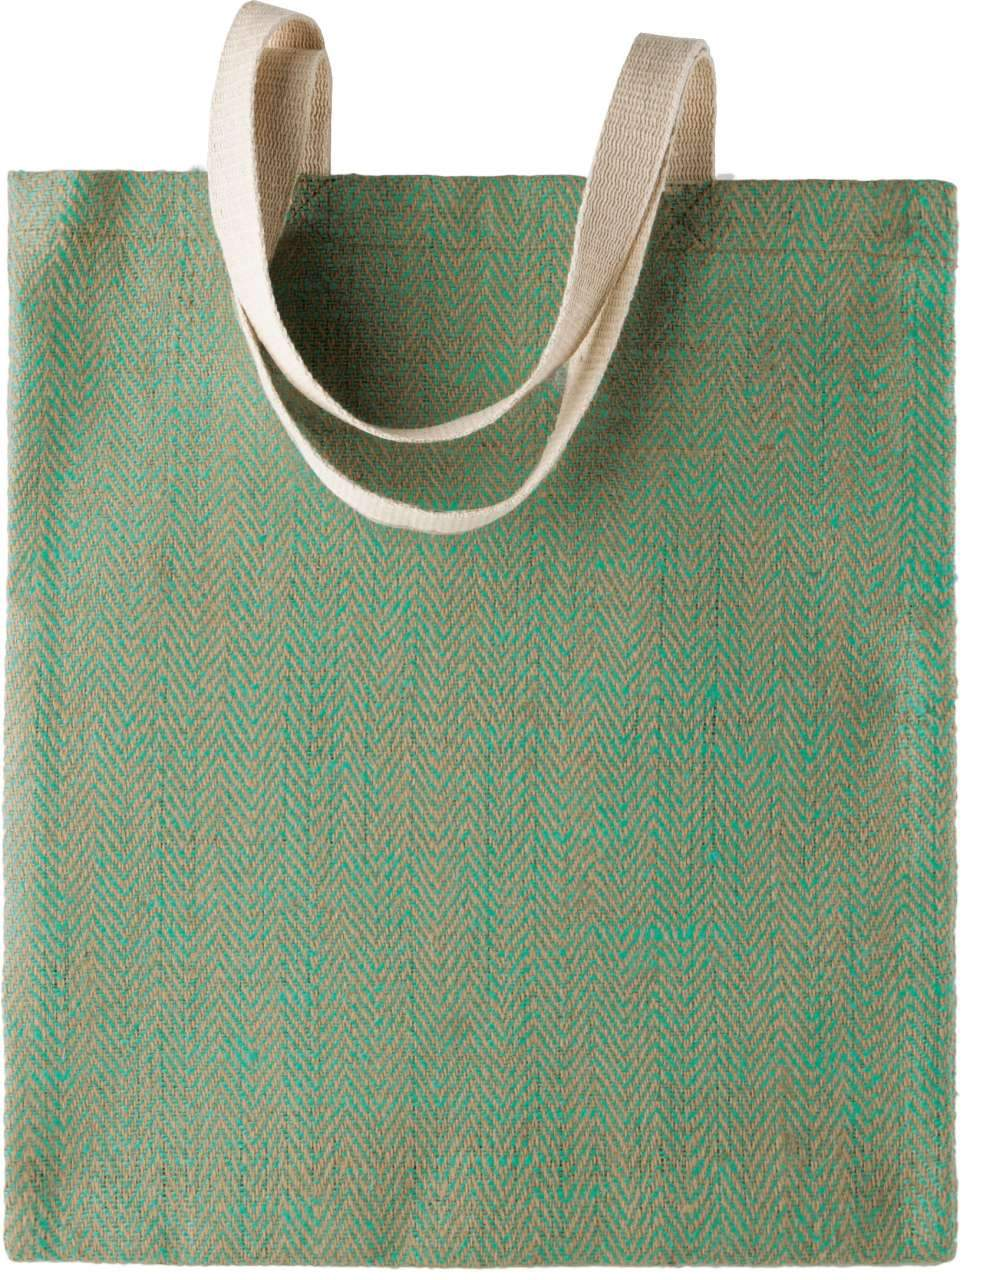 100% NATURAL YARN DYED JUTE BAG - BRANIO